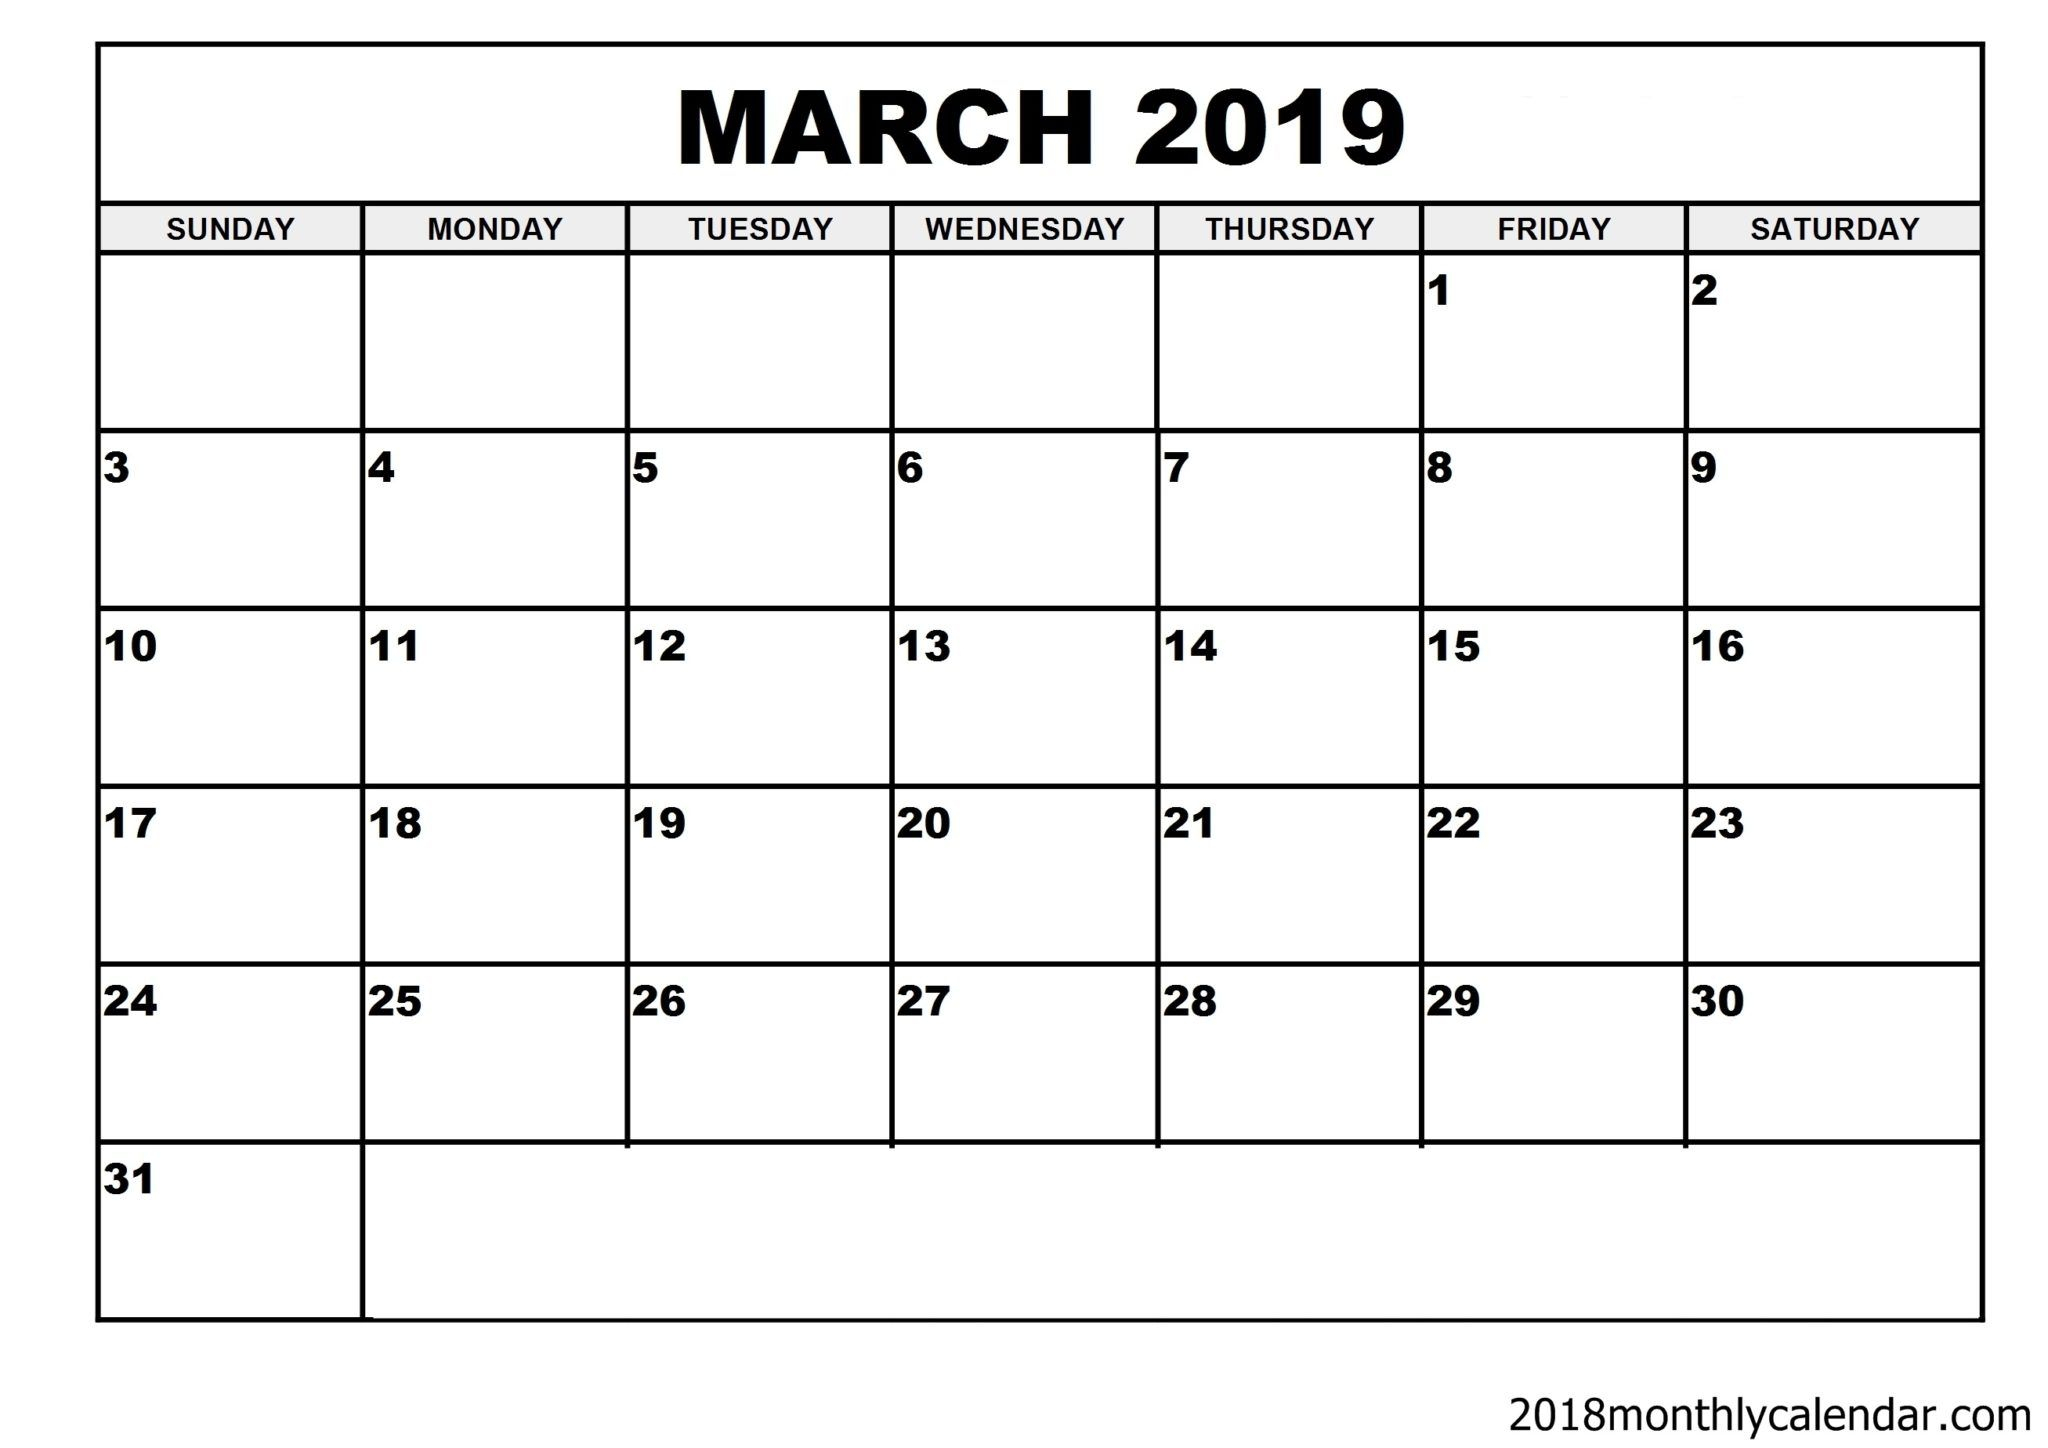 Download March 2019 Calendar – Blank Template - Editable Calendar intended for Blank Printable Calendar Free